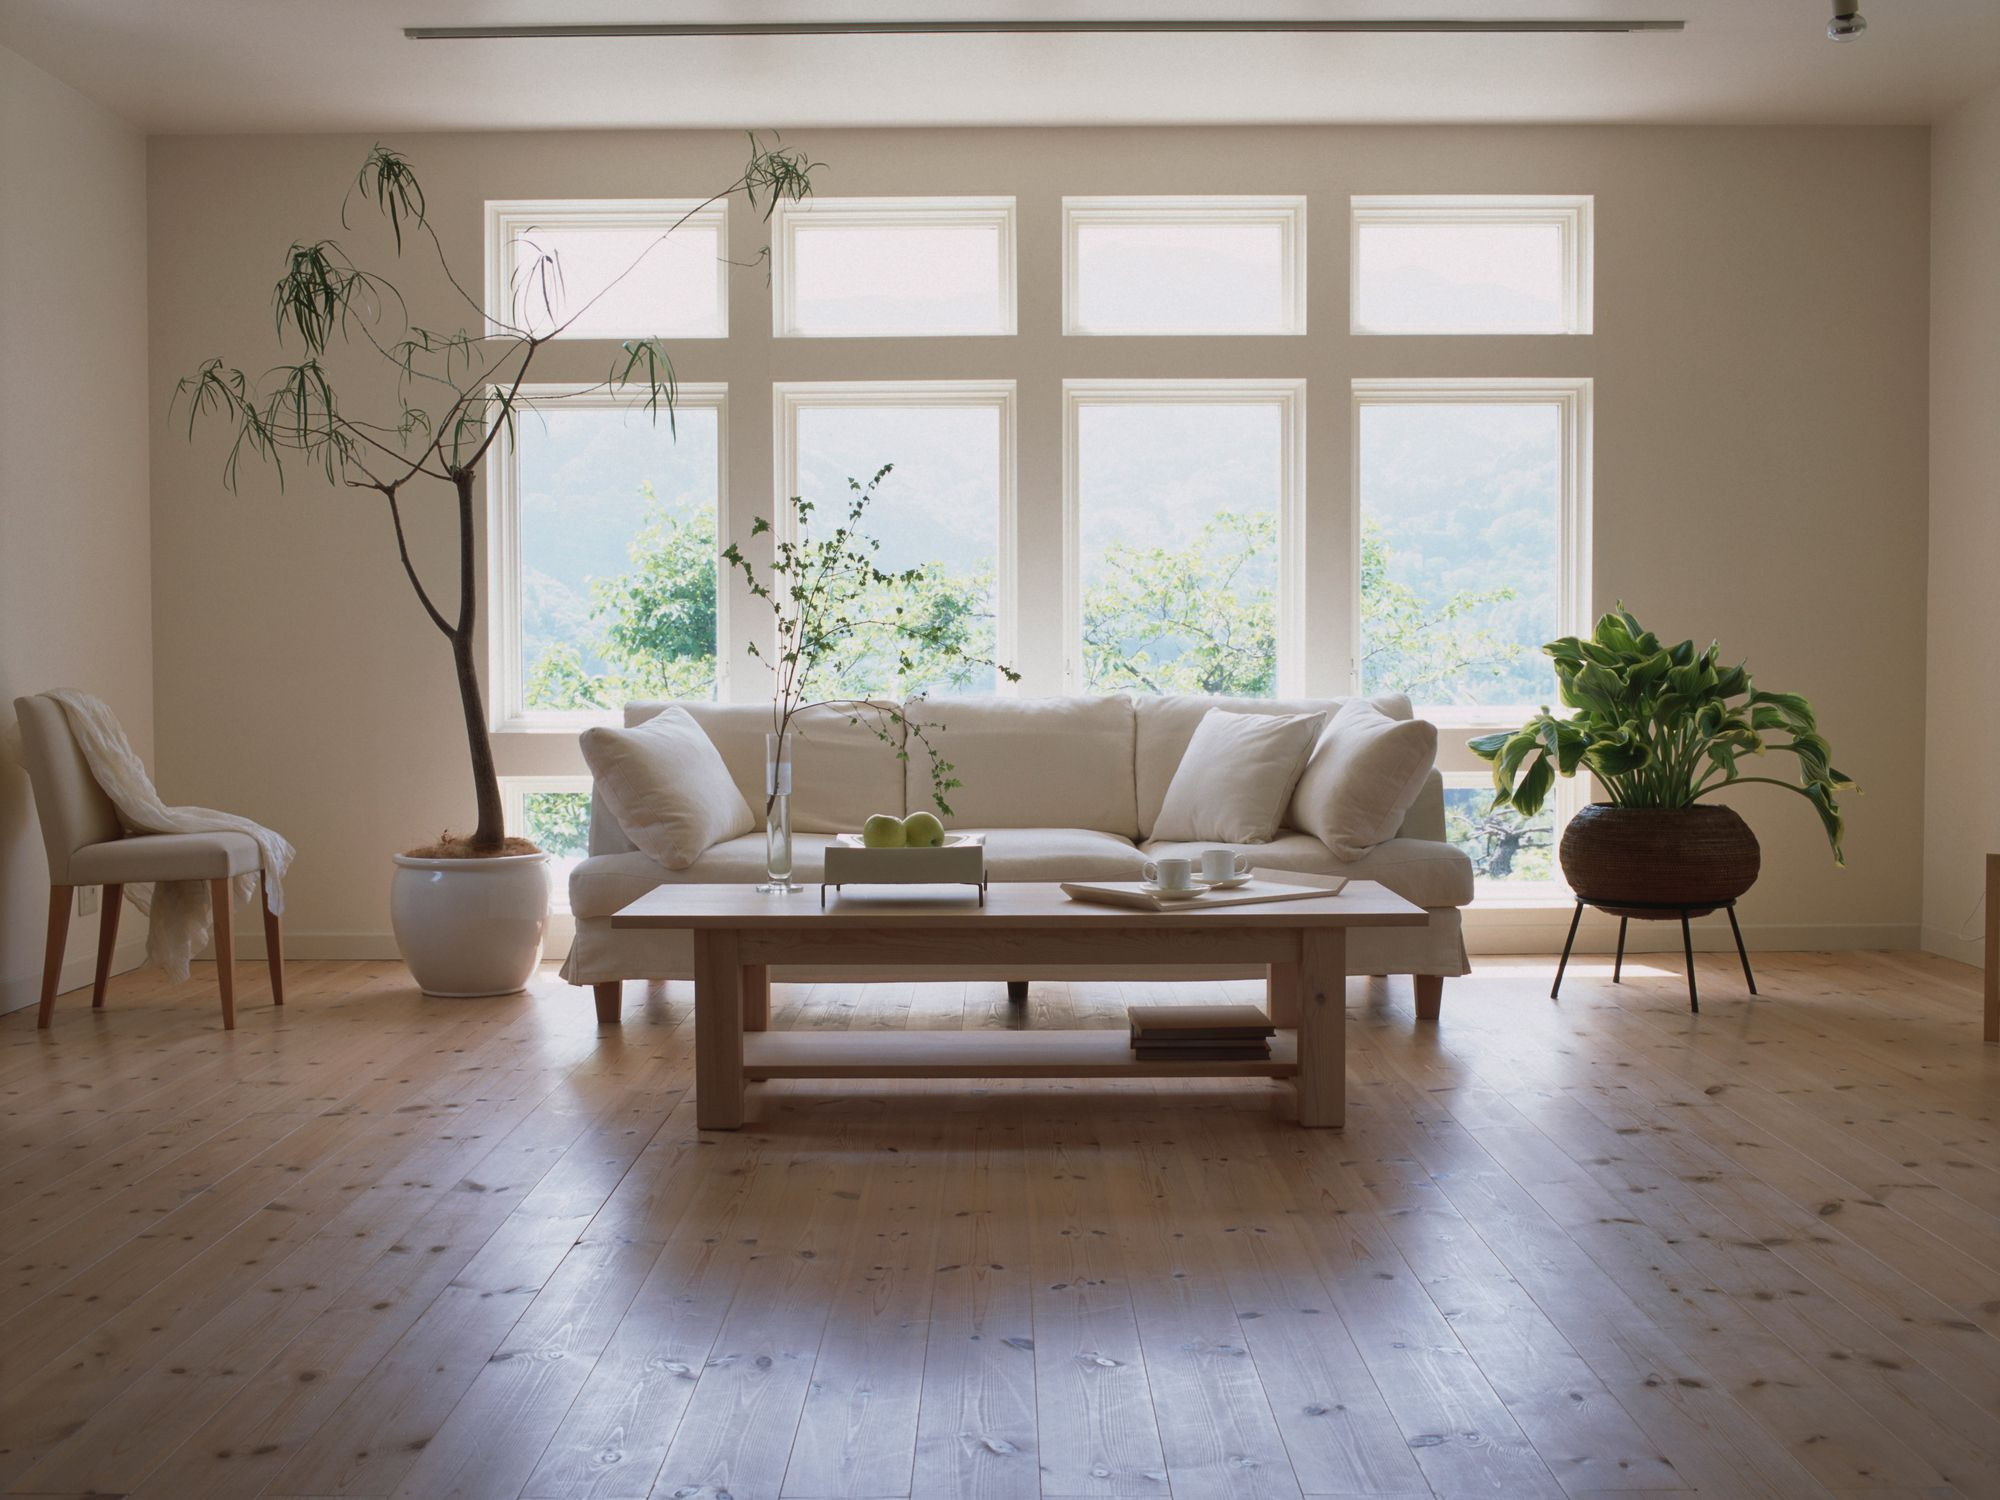 cost to sand and refinish hardwood floors uk of laminate flooring pros and cons within living room laminate floor gettyimages dexph070 001 58b5cc793df78cdcd8be2938